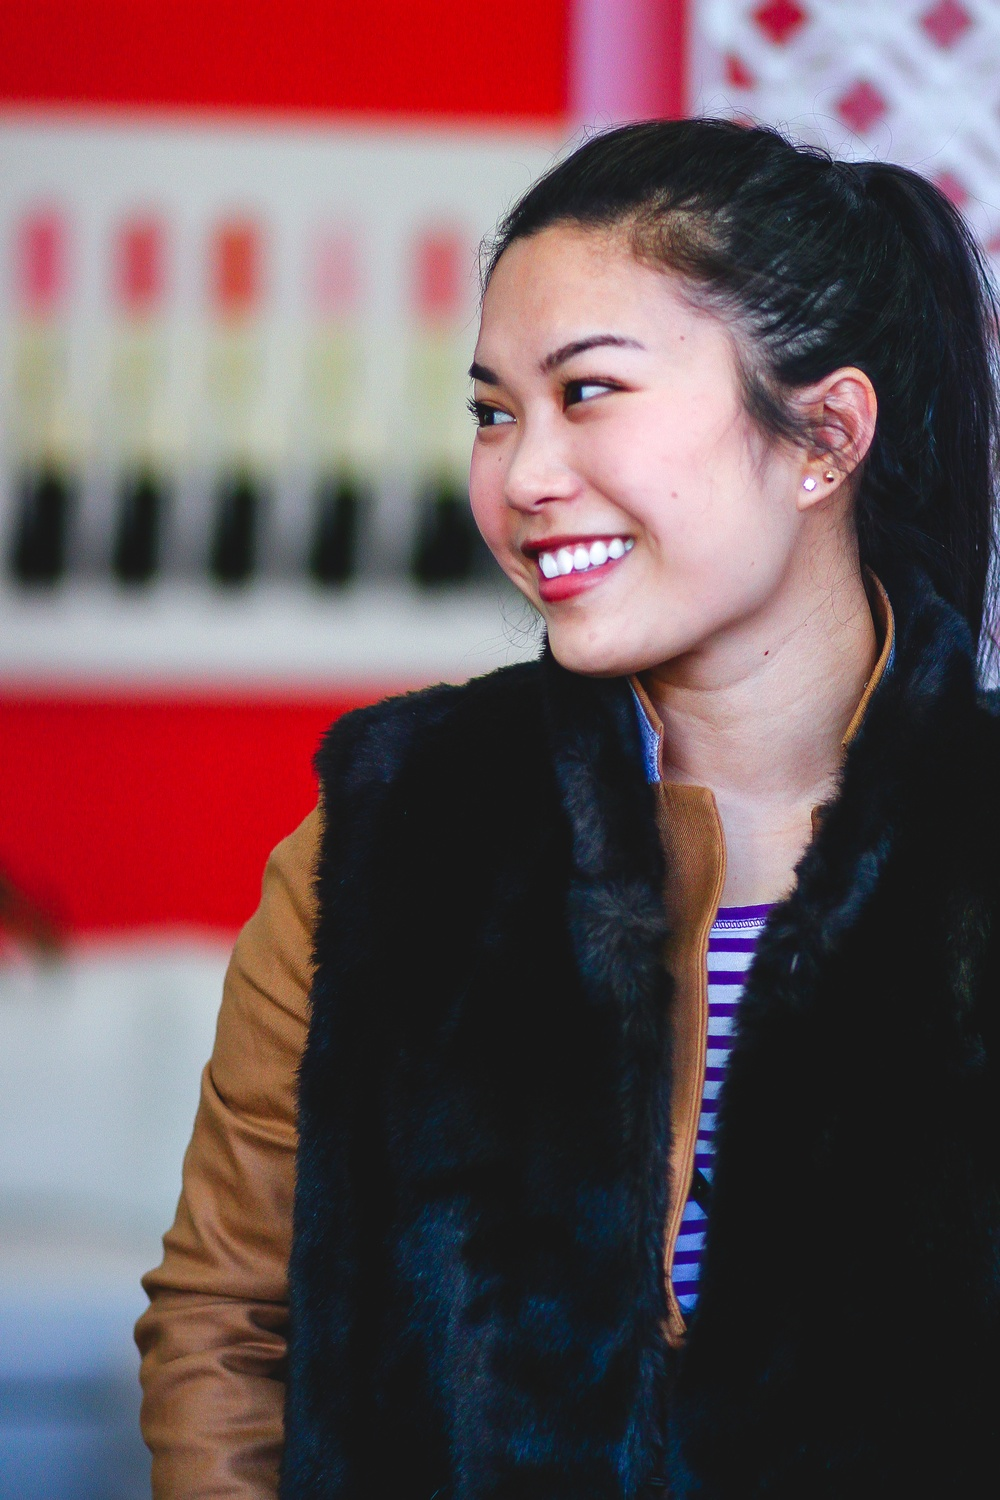 Annie Wang is the co-founder of the online magazine Her Campus. Wang left Harvard in 2010 to dedicate herself to the project which now has chapters nationwide, full-time.